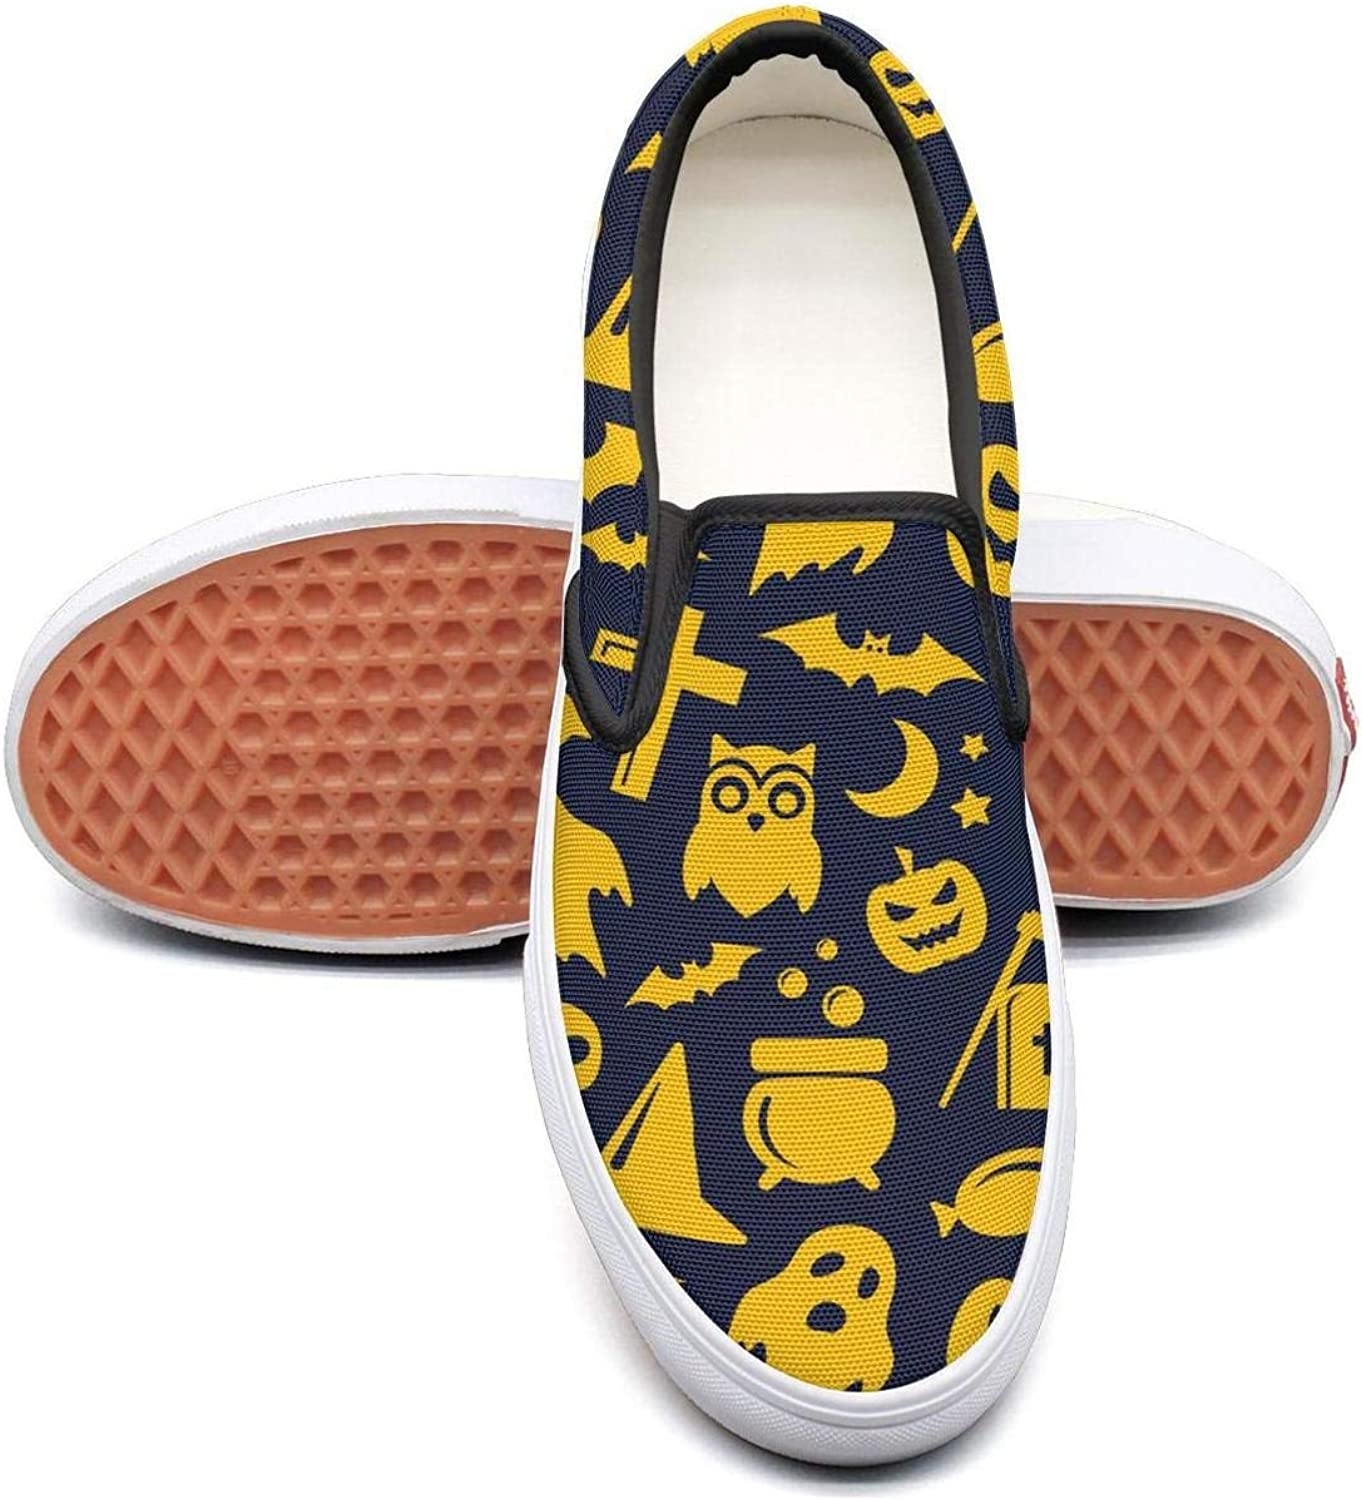 bluee Yellow Halloween Skull A Slip On Rubber Sole Loafers Canvas shoes for Women Comfortable